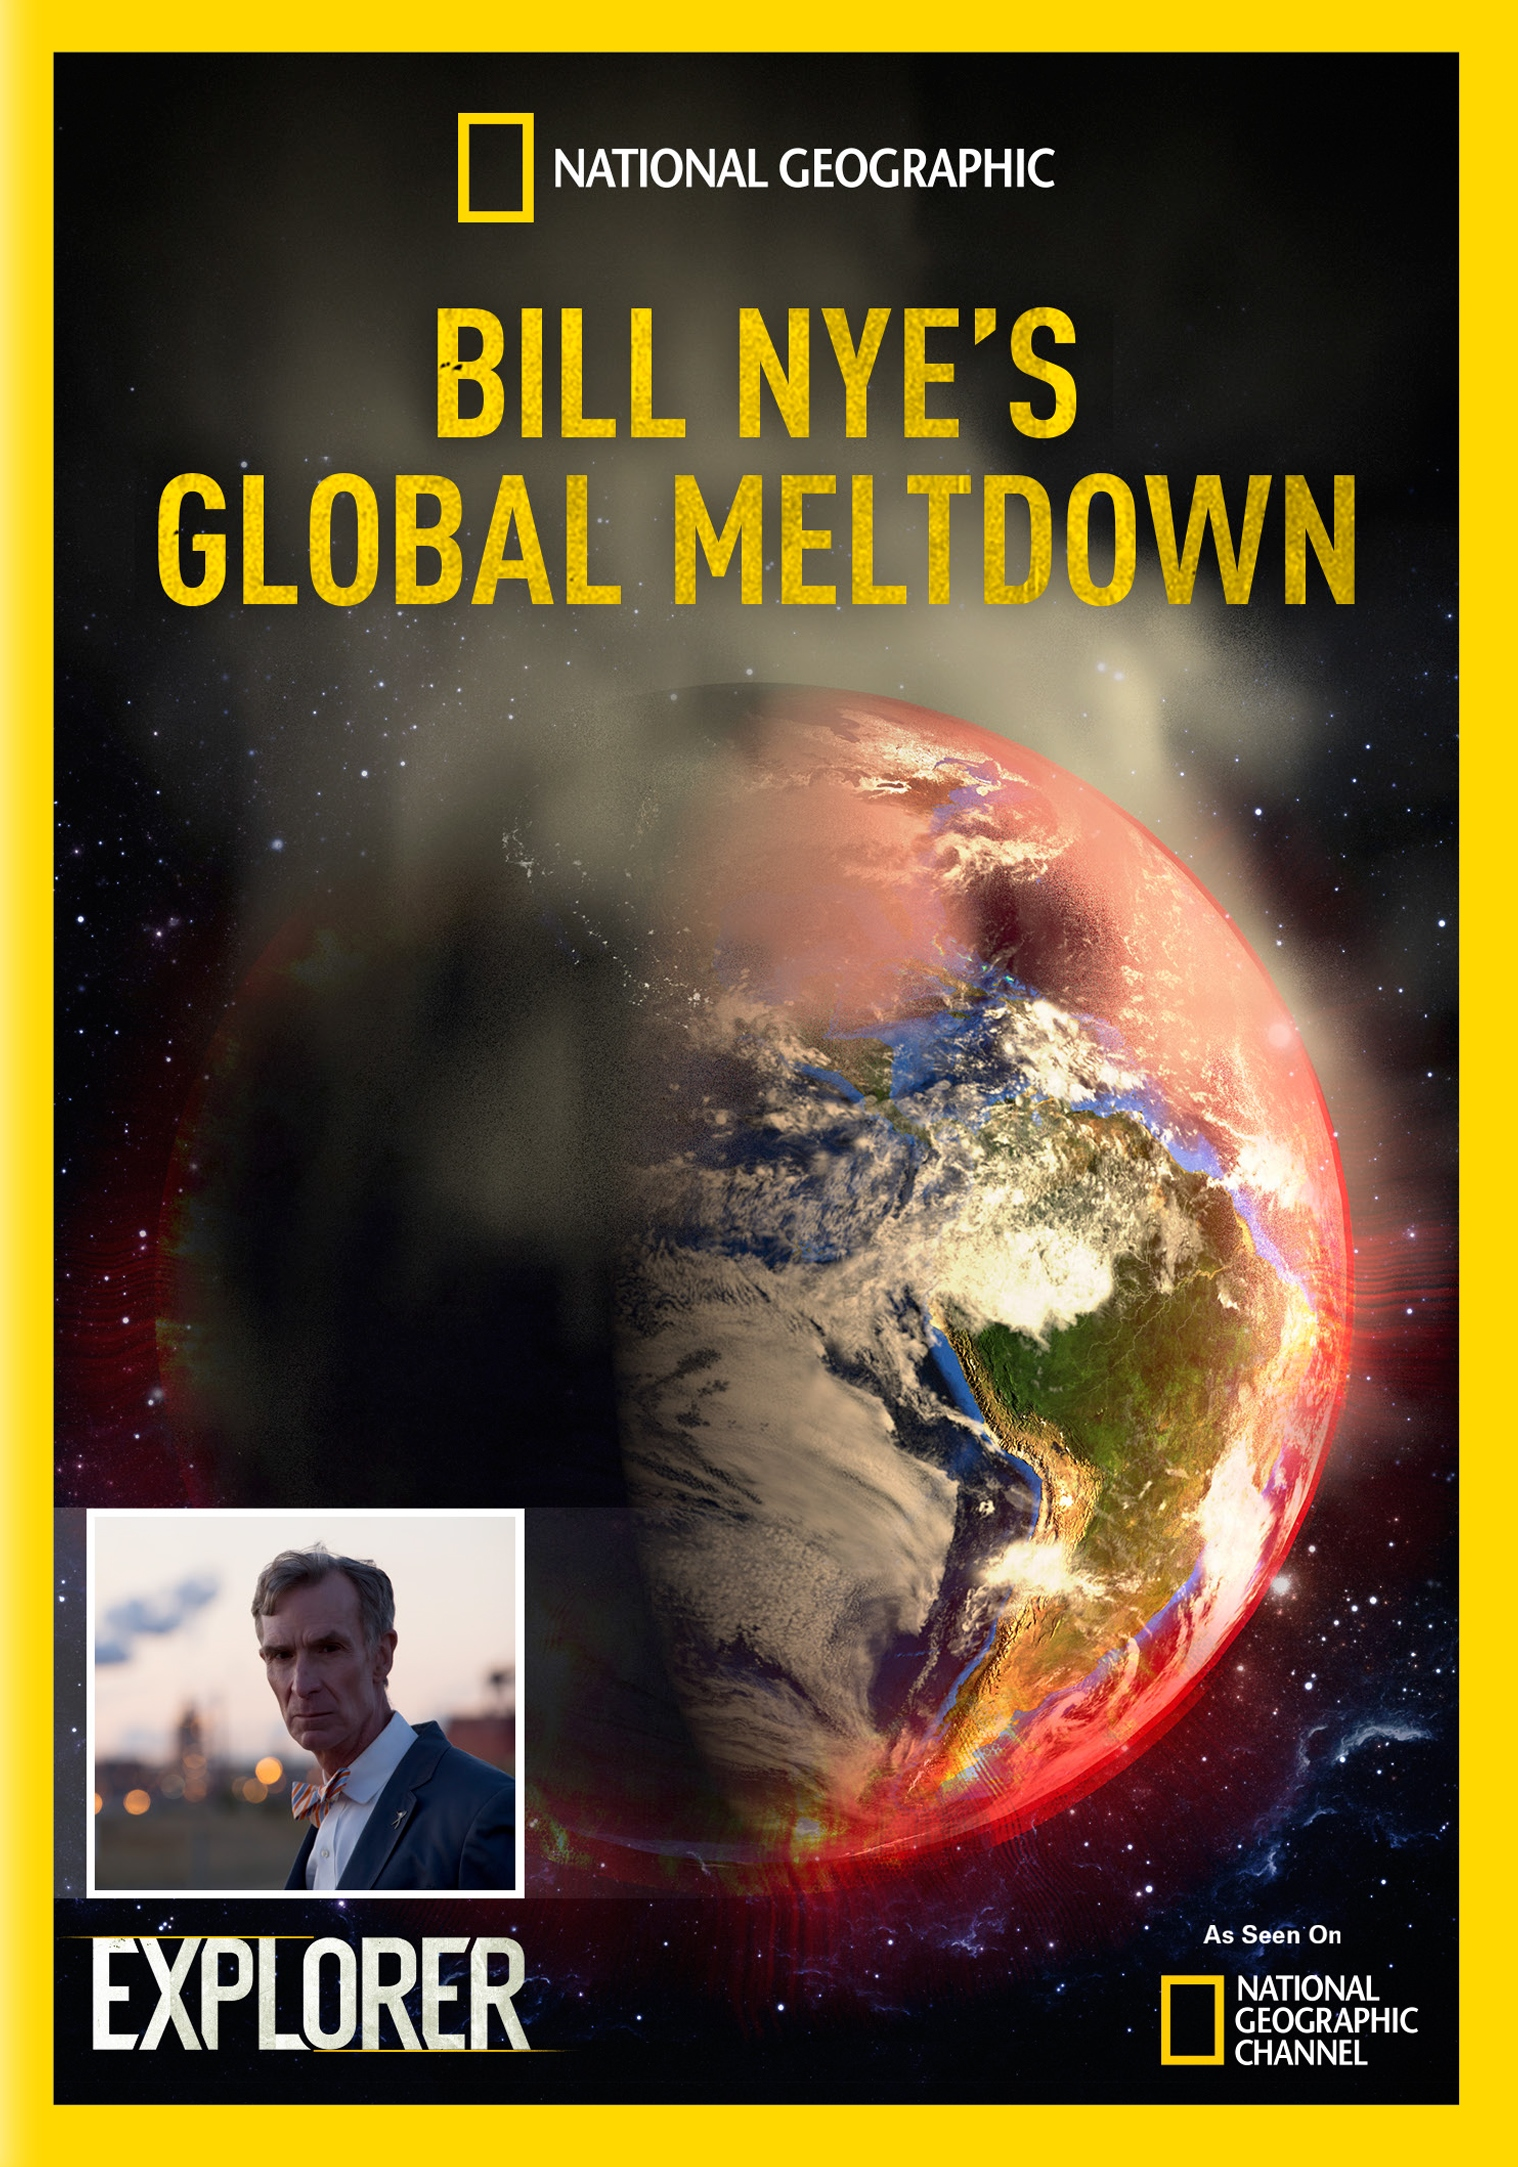 National Geographic Explorer: Bill Nye's Global Meltdown